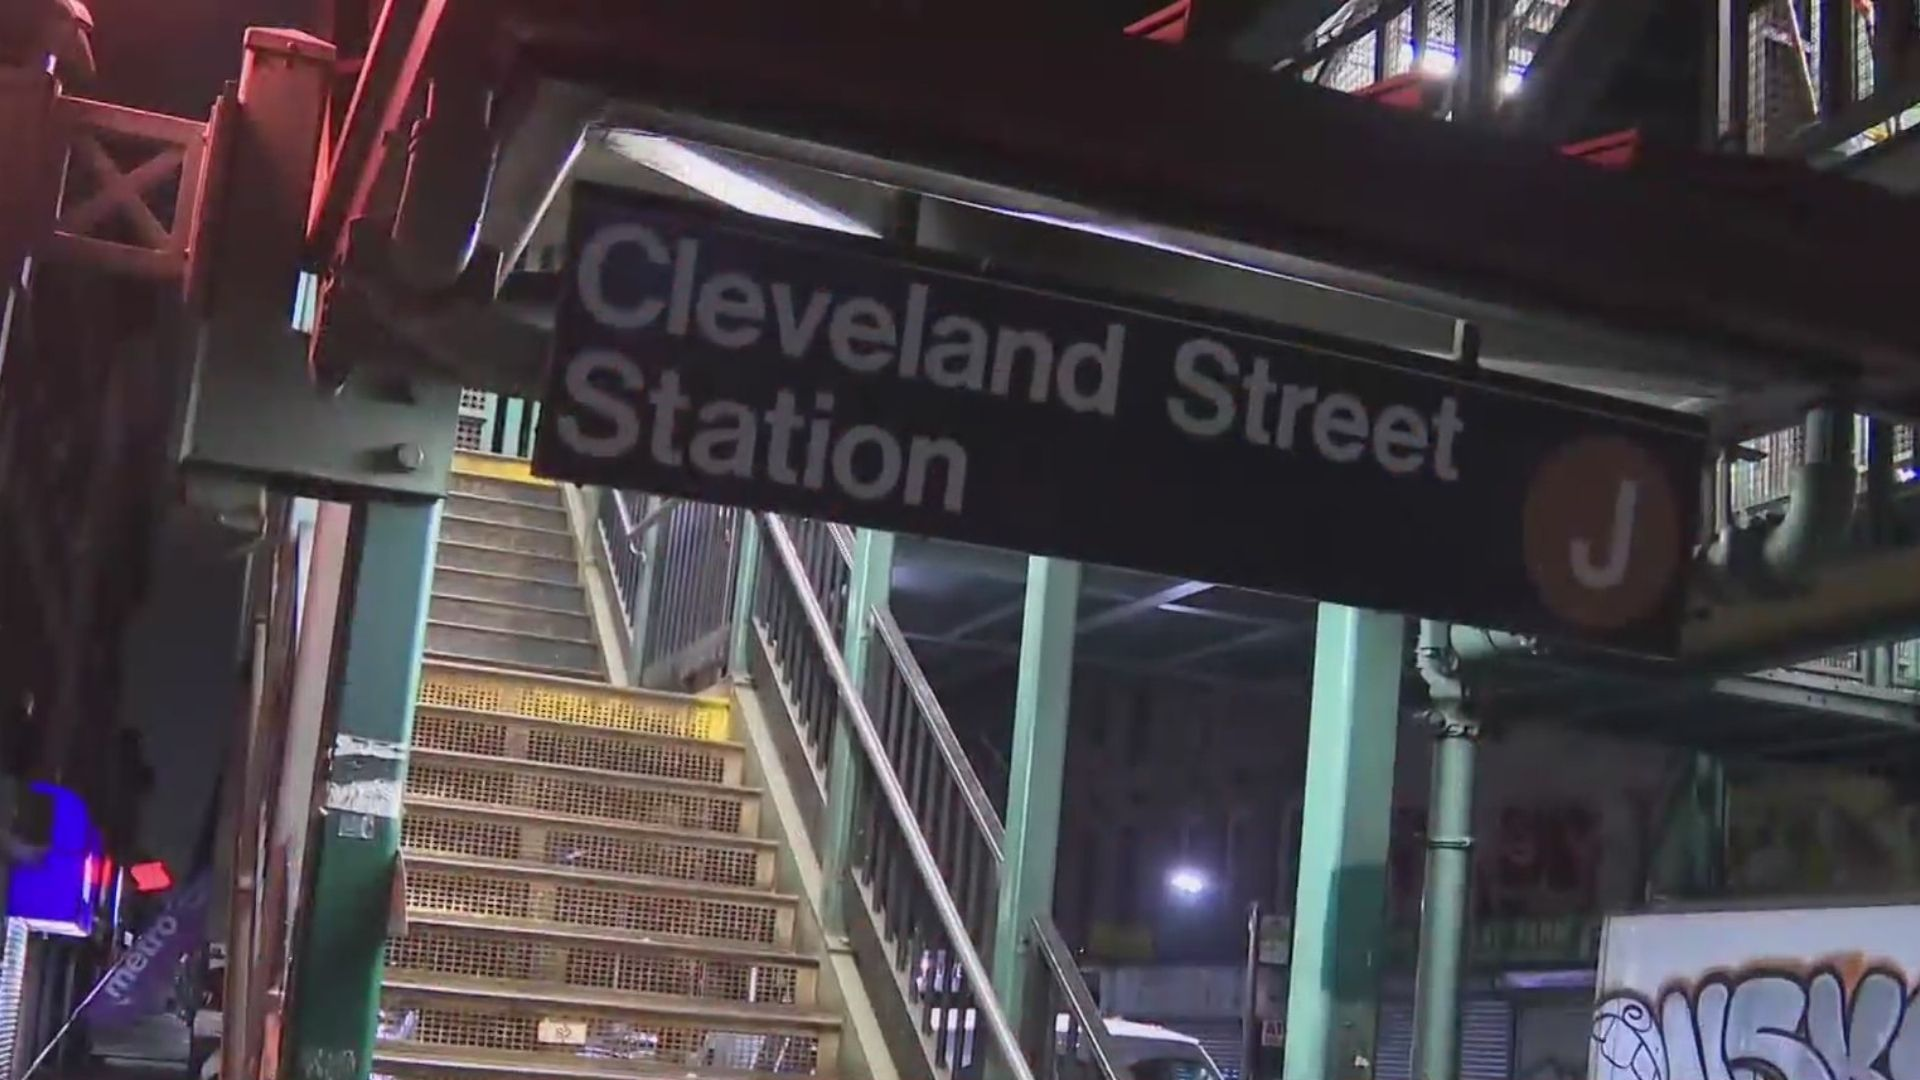 Cleveland Street subway station in Brookyn